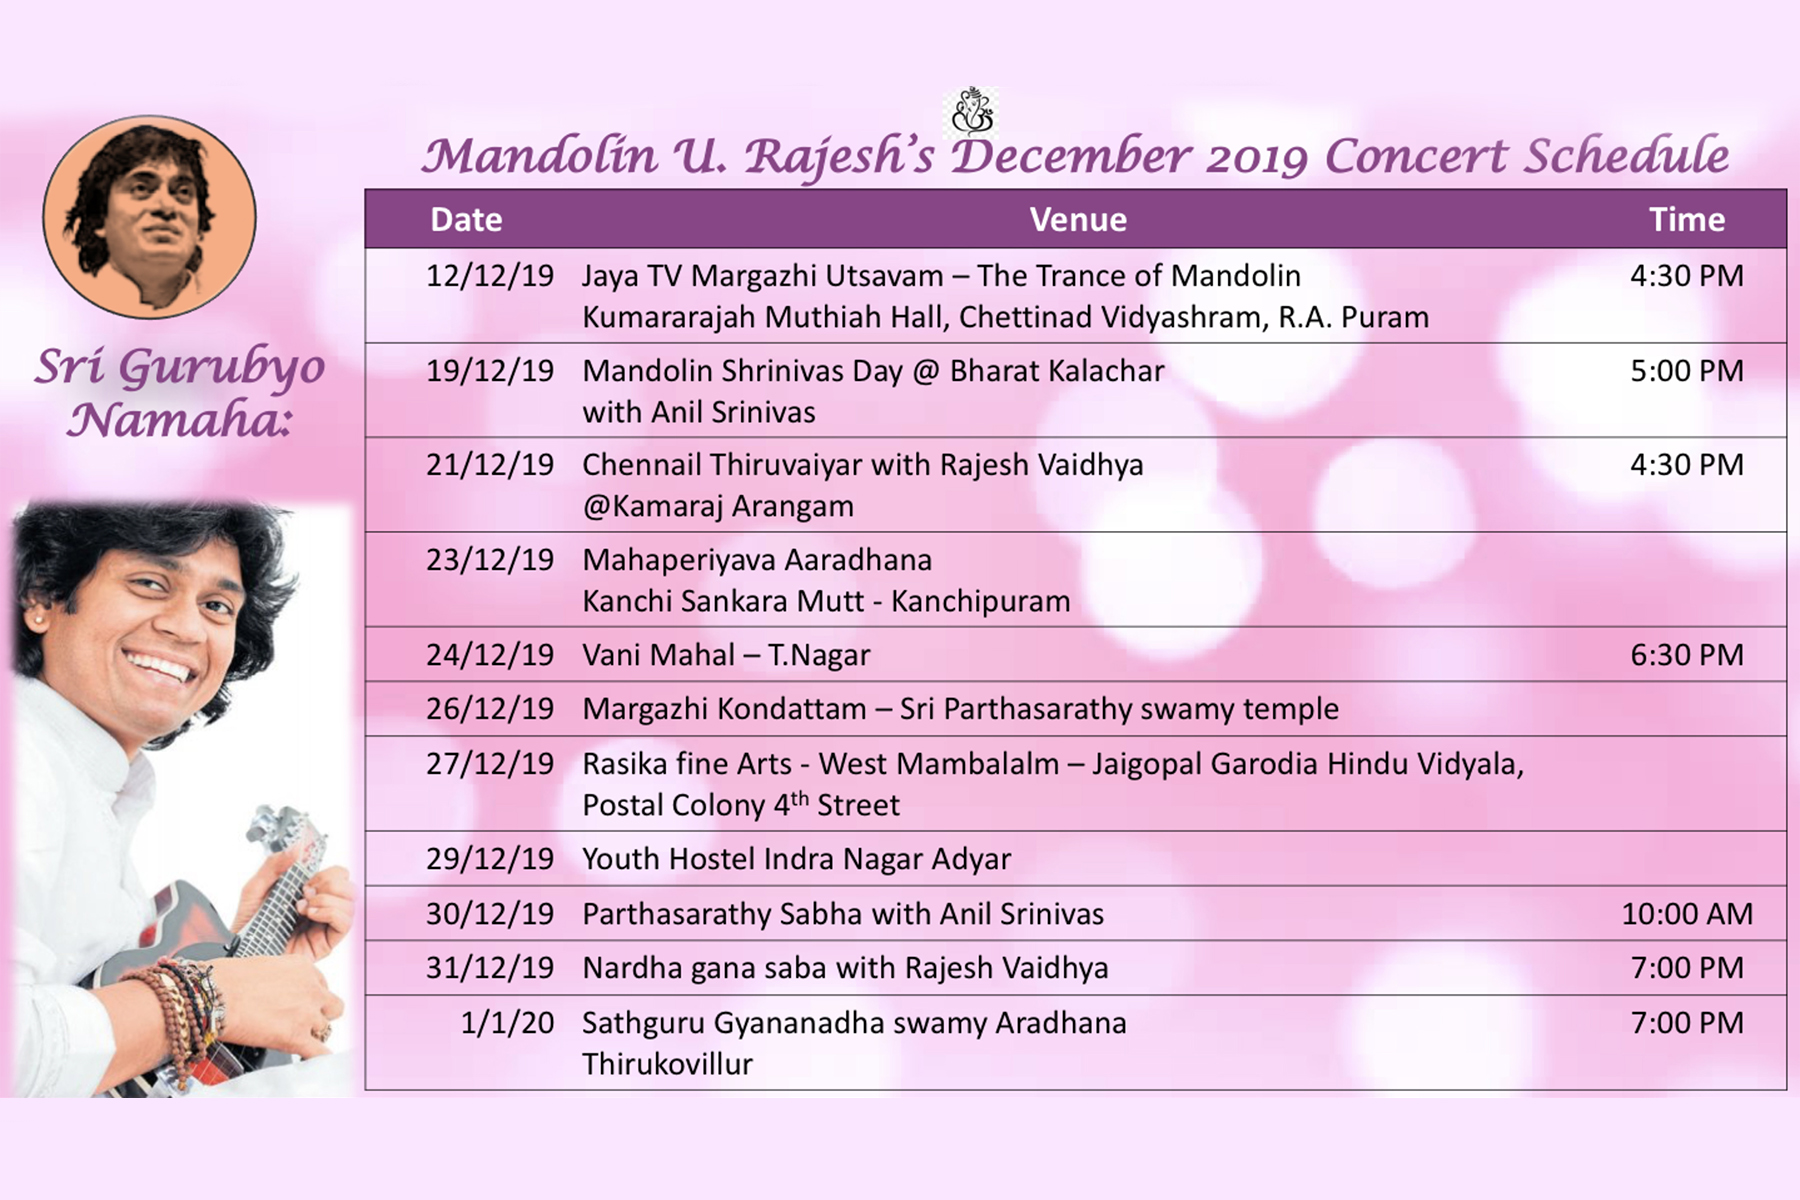 upcoming-december-concert-schedule-of-mandolin-u-rajesh